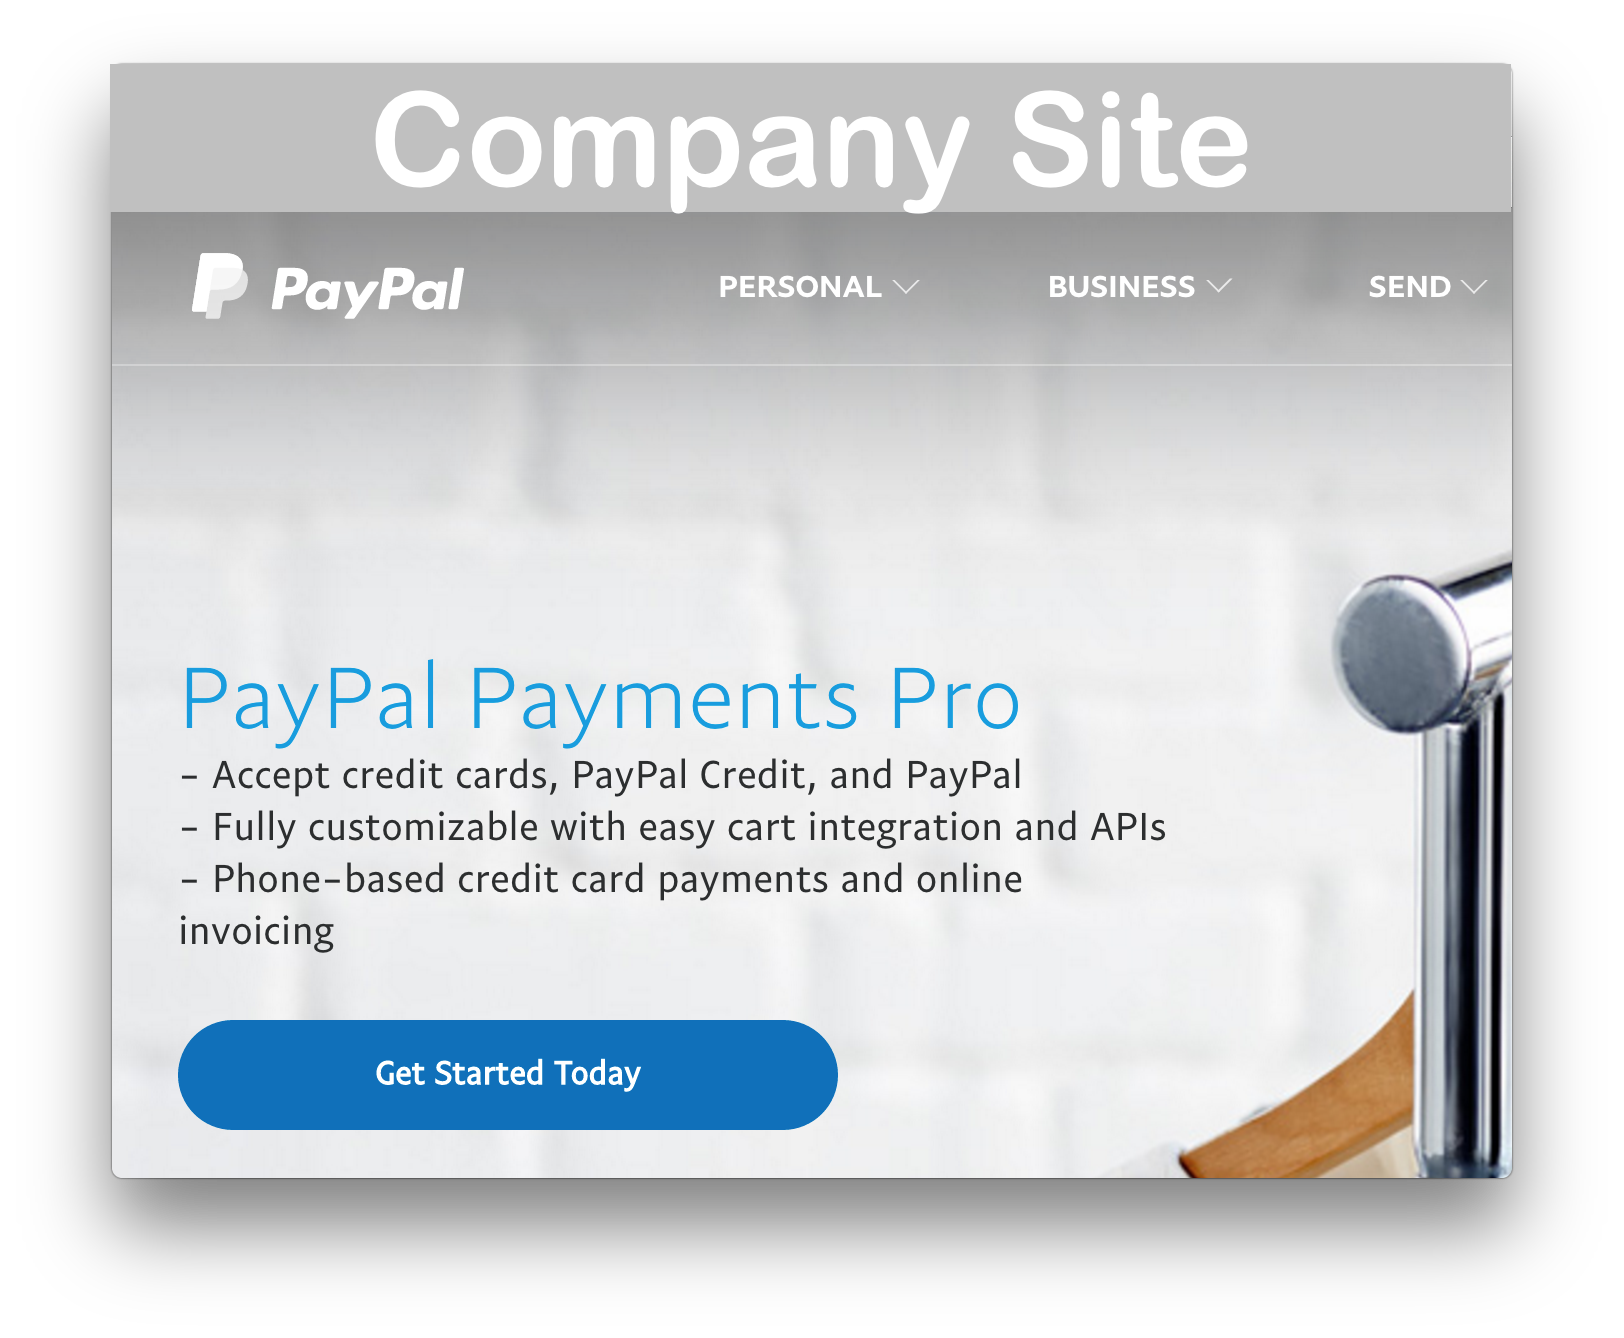 paypal payments pro documentation